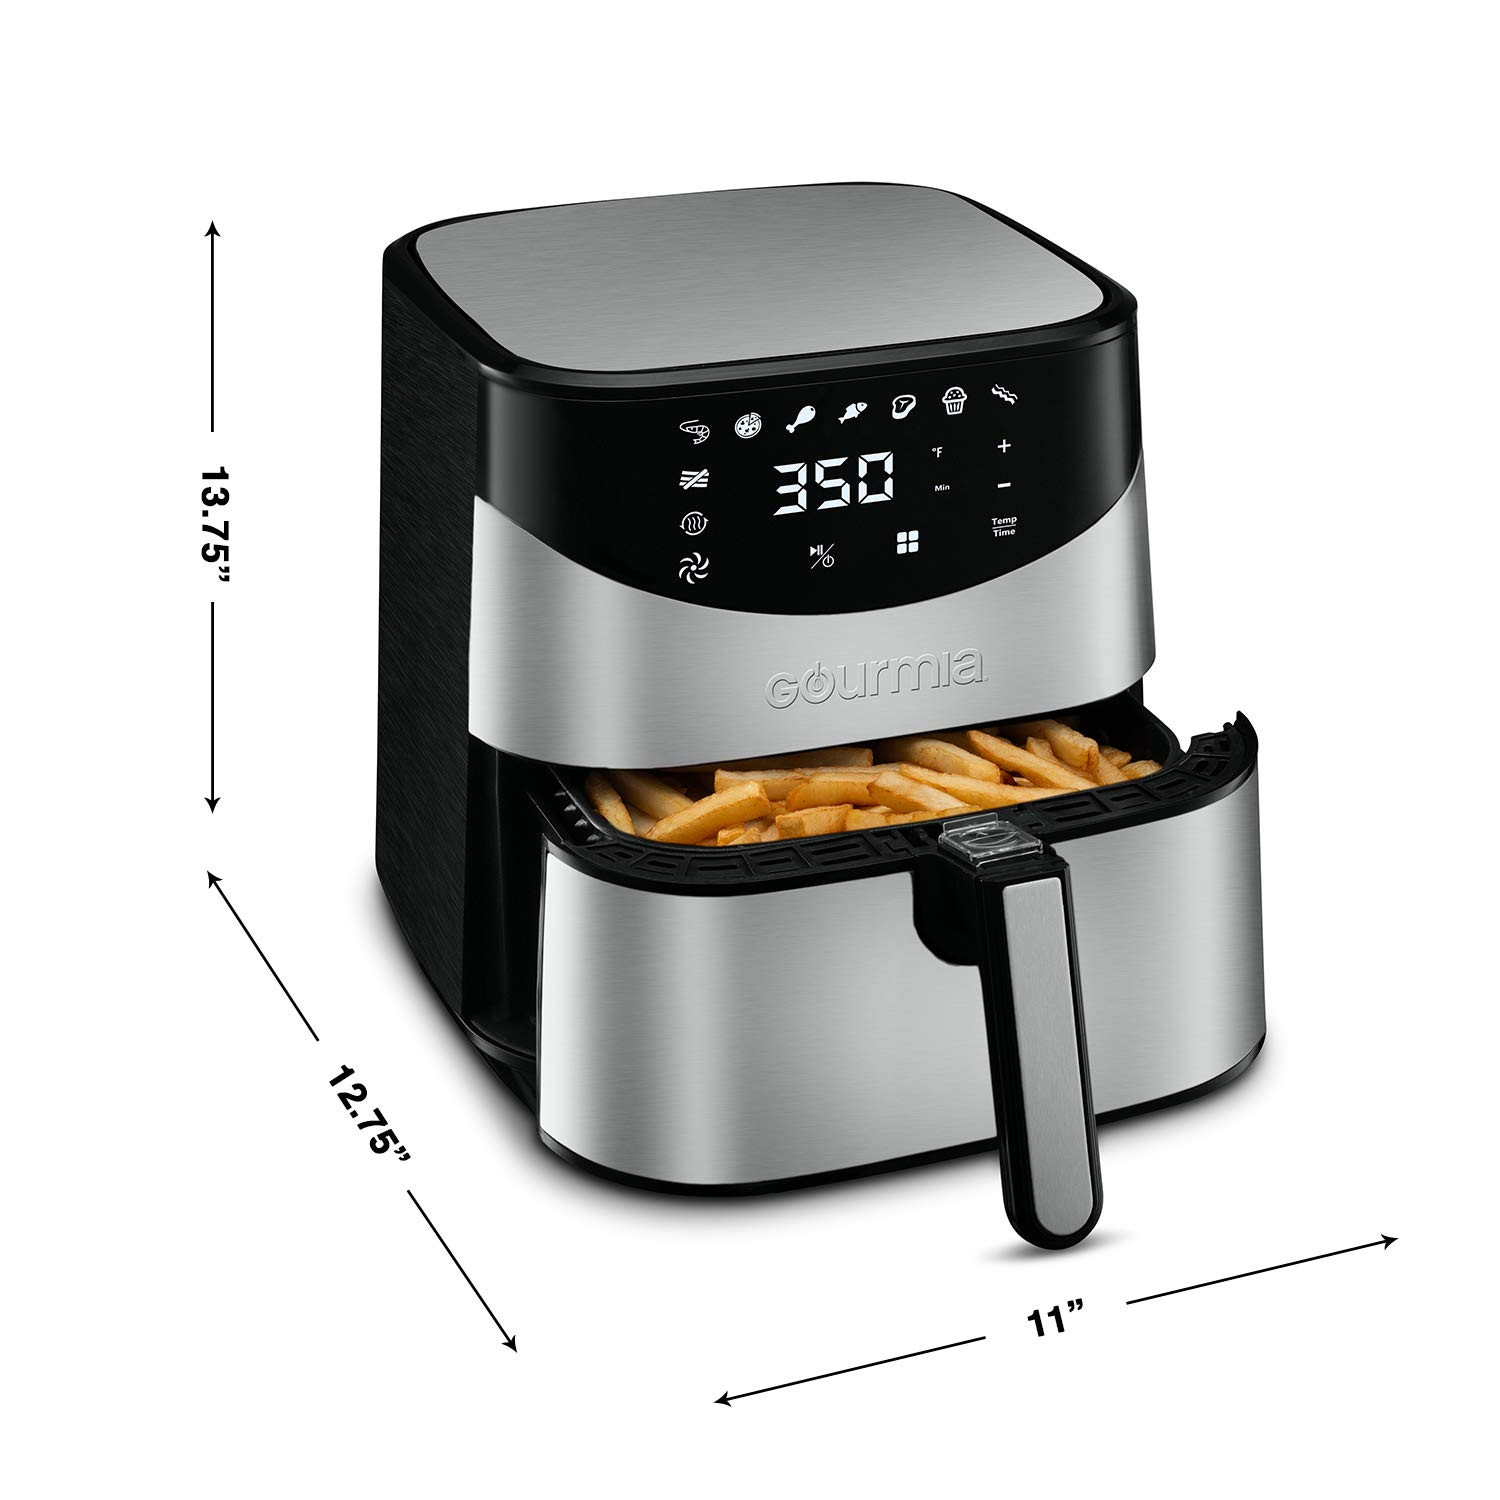 Gourmia GAF645 Digital Stainless Steel Air Fryer   Oil-Free Healthy Cooking   6-Quart Capacity   8 Cook Modes   Removable, Dishwasher-Safe Basket   Free Recipe Book Included by Gourmia (Image #6)